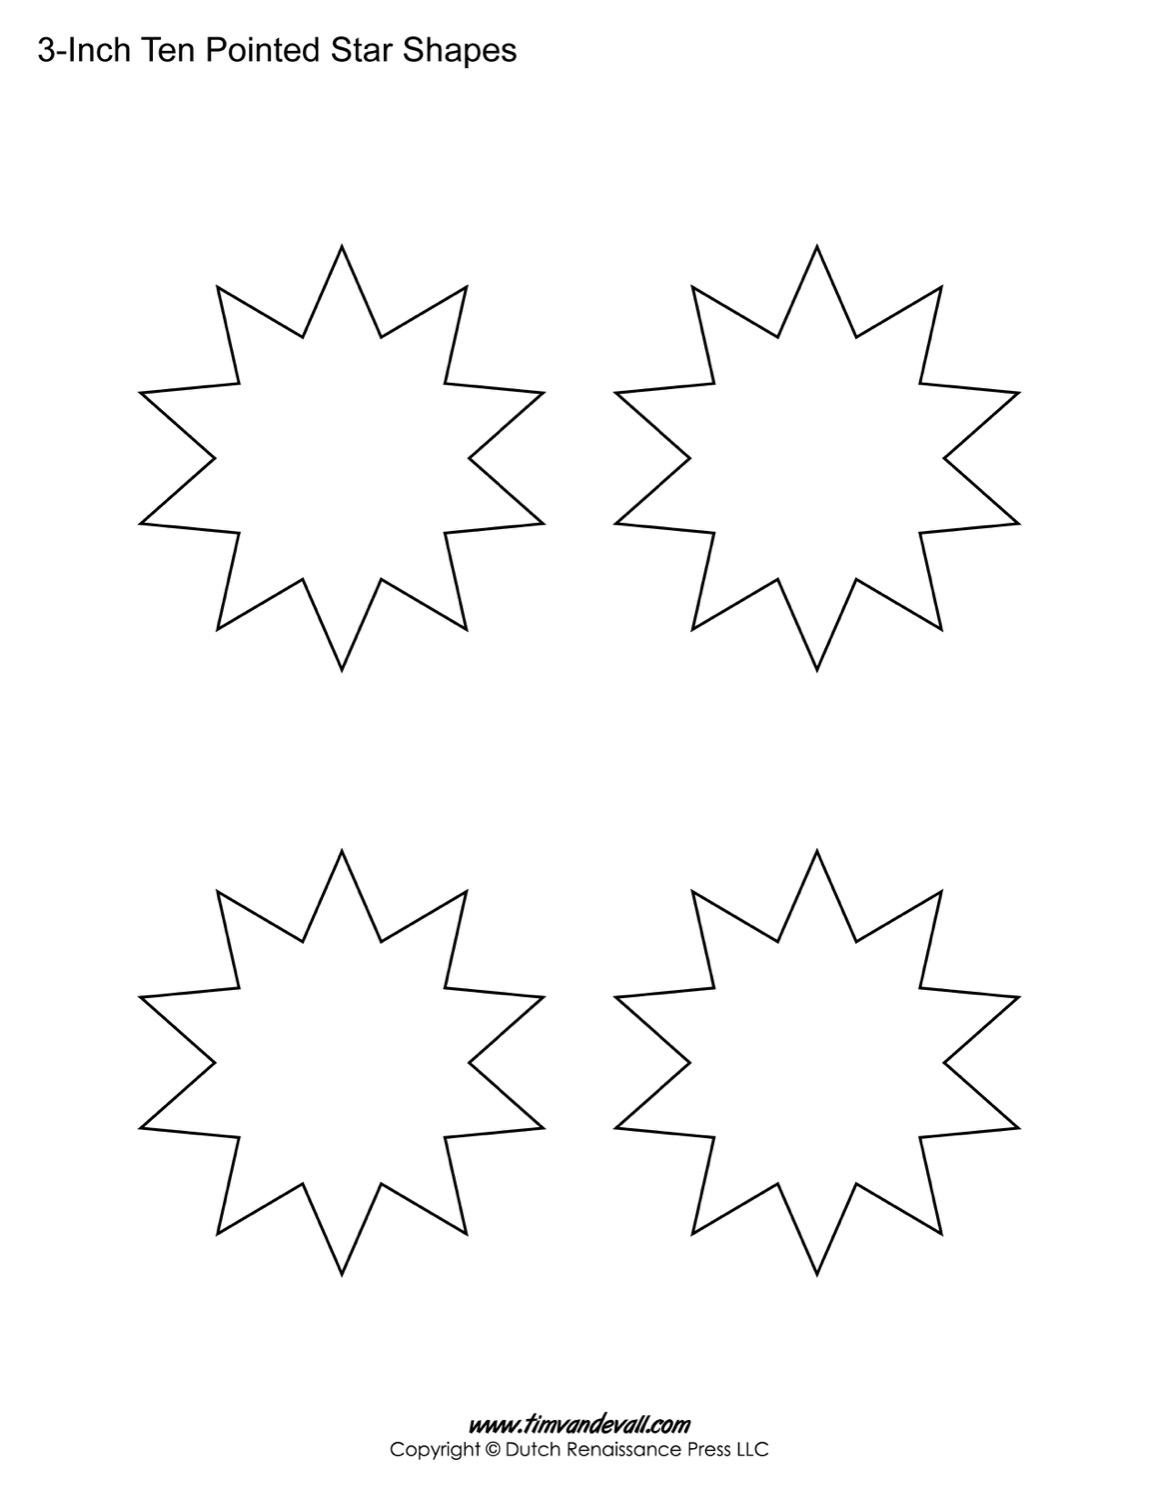 Blank Ten Pointed Star Shapes – Star Template